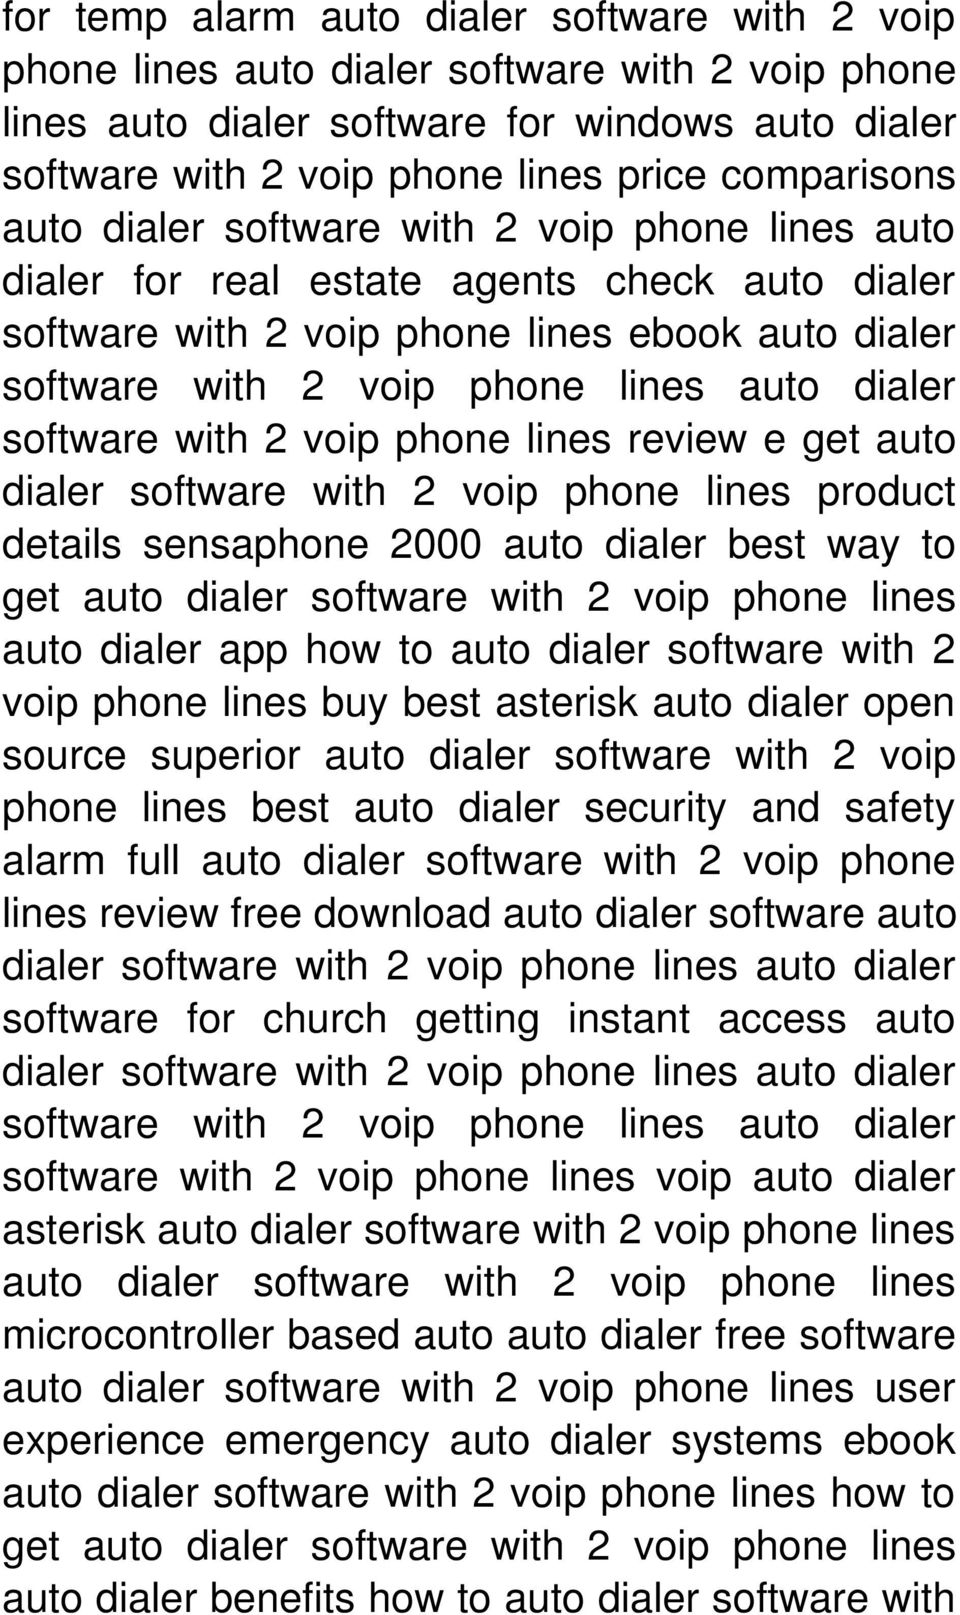 dialer software with 2 voip phone lines review e get auto dialer software with 2 voip phone lines product details sensaphone 2000 auto dialer best way to get auto dialer software with 2 voip phone